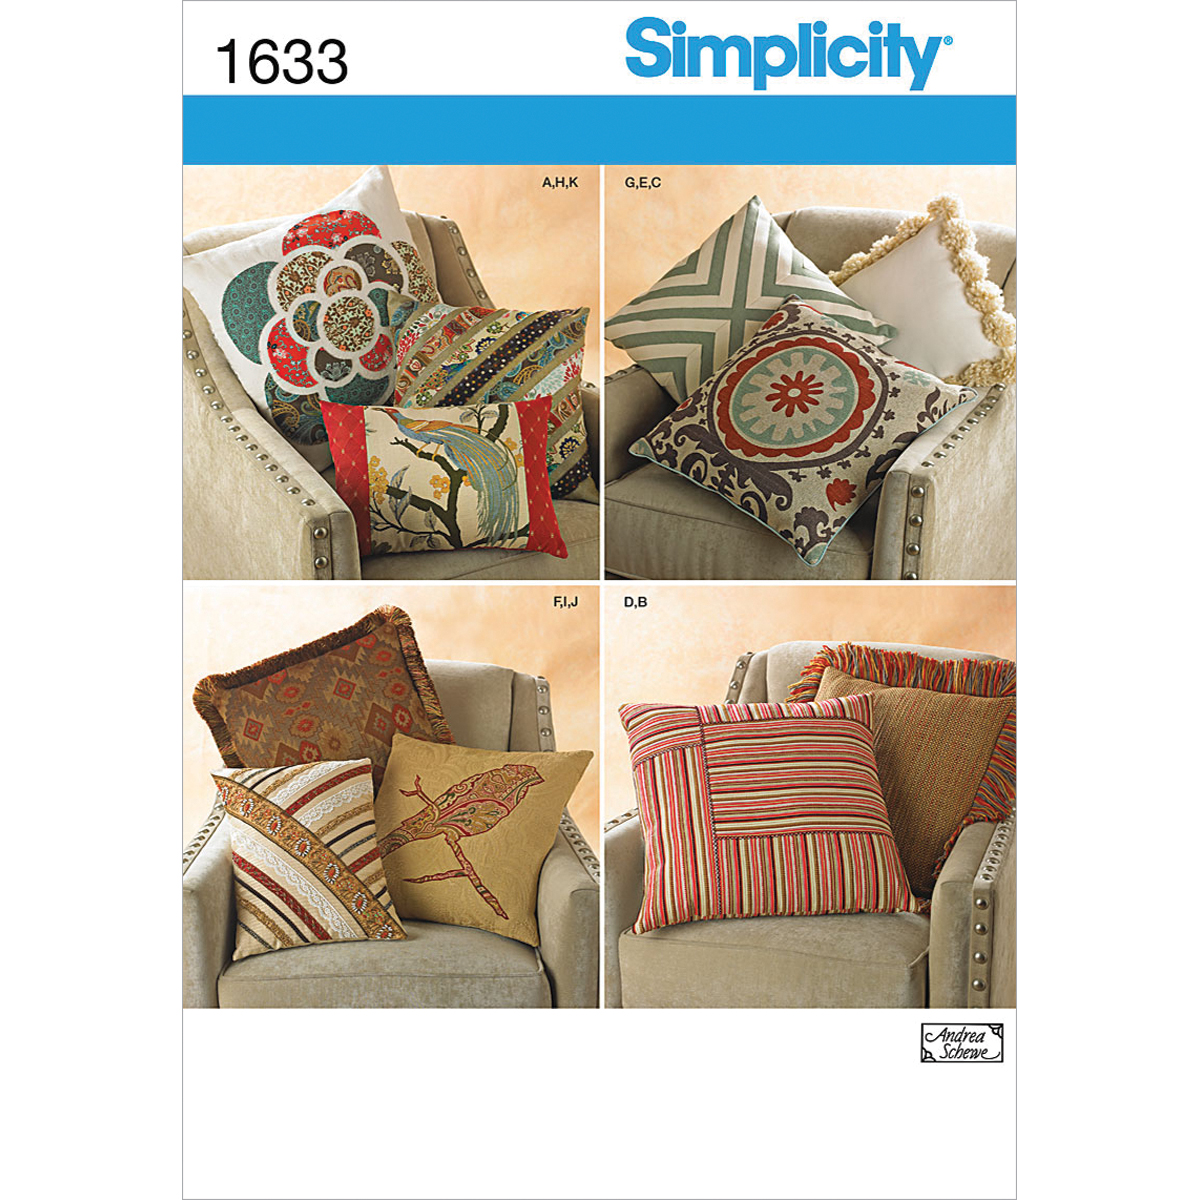 Simplicity Pattern 1633OS One Size -Simplicity Crafts Ho